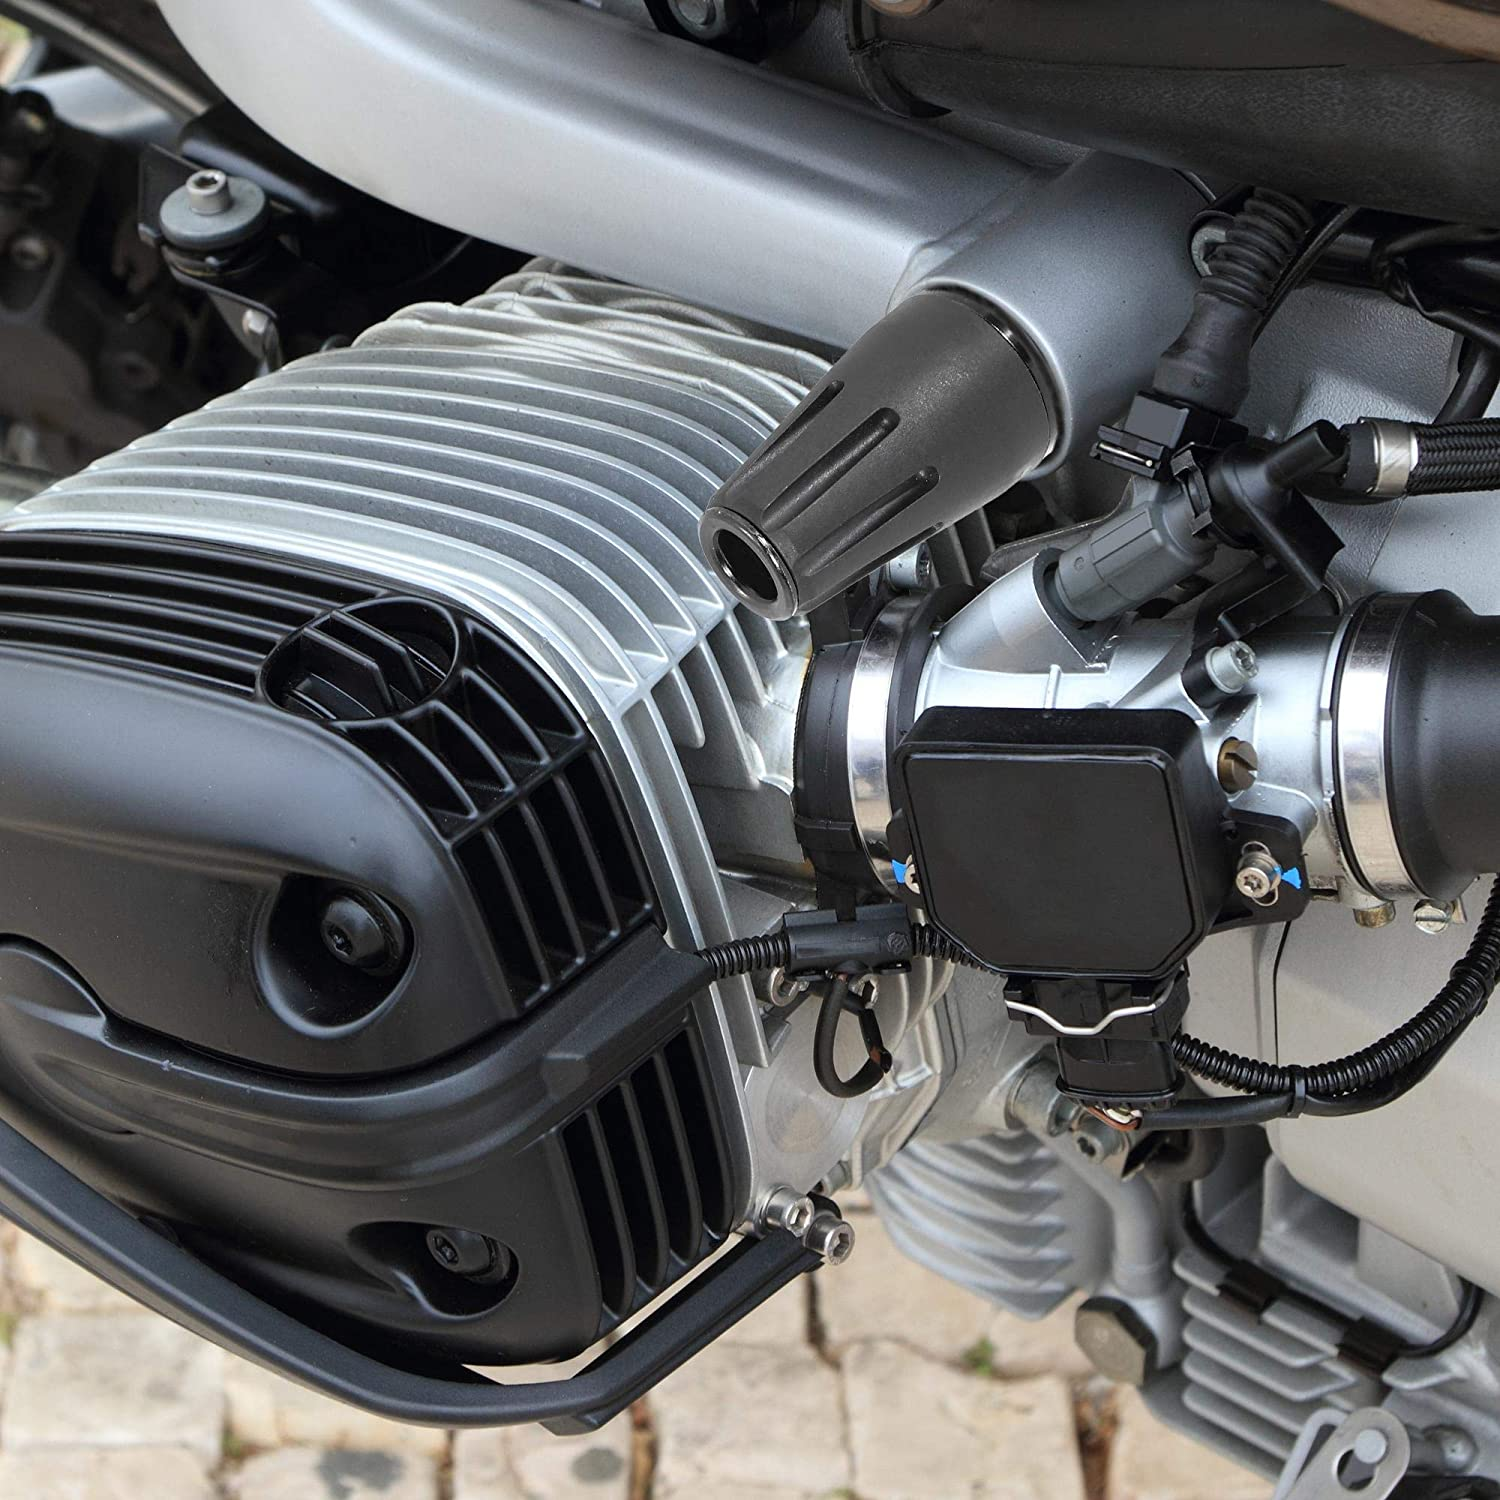 F FIERCE CYCLE Black Motorcycle Frame Slider Crash Pad Anti Collision Strip Guards Protector M8 for Yamaha XSR700 FZ-07